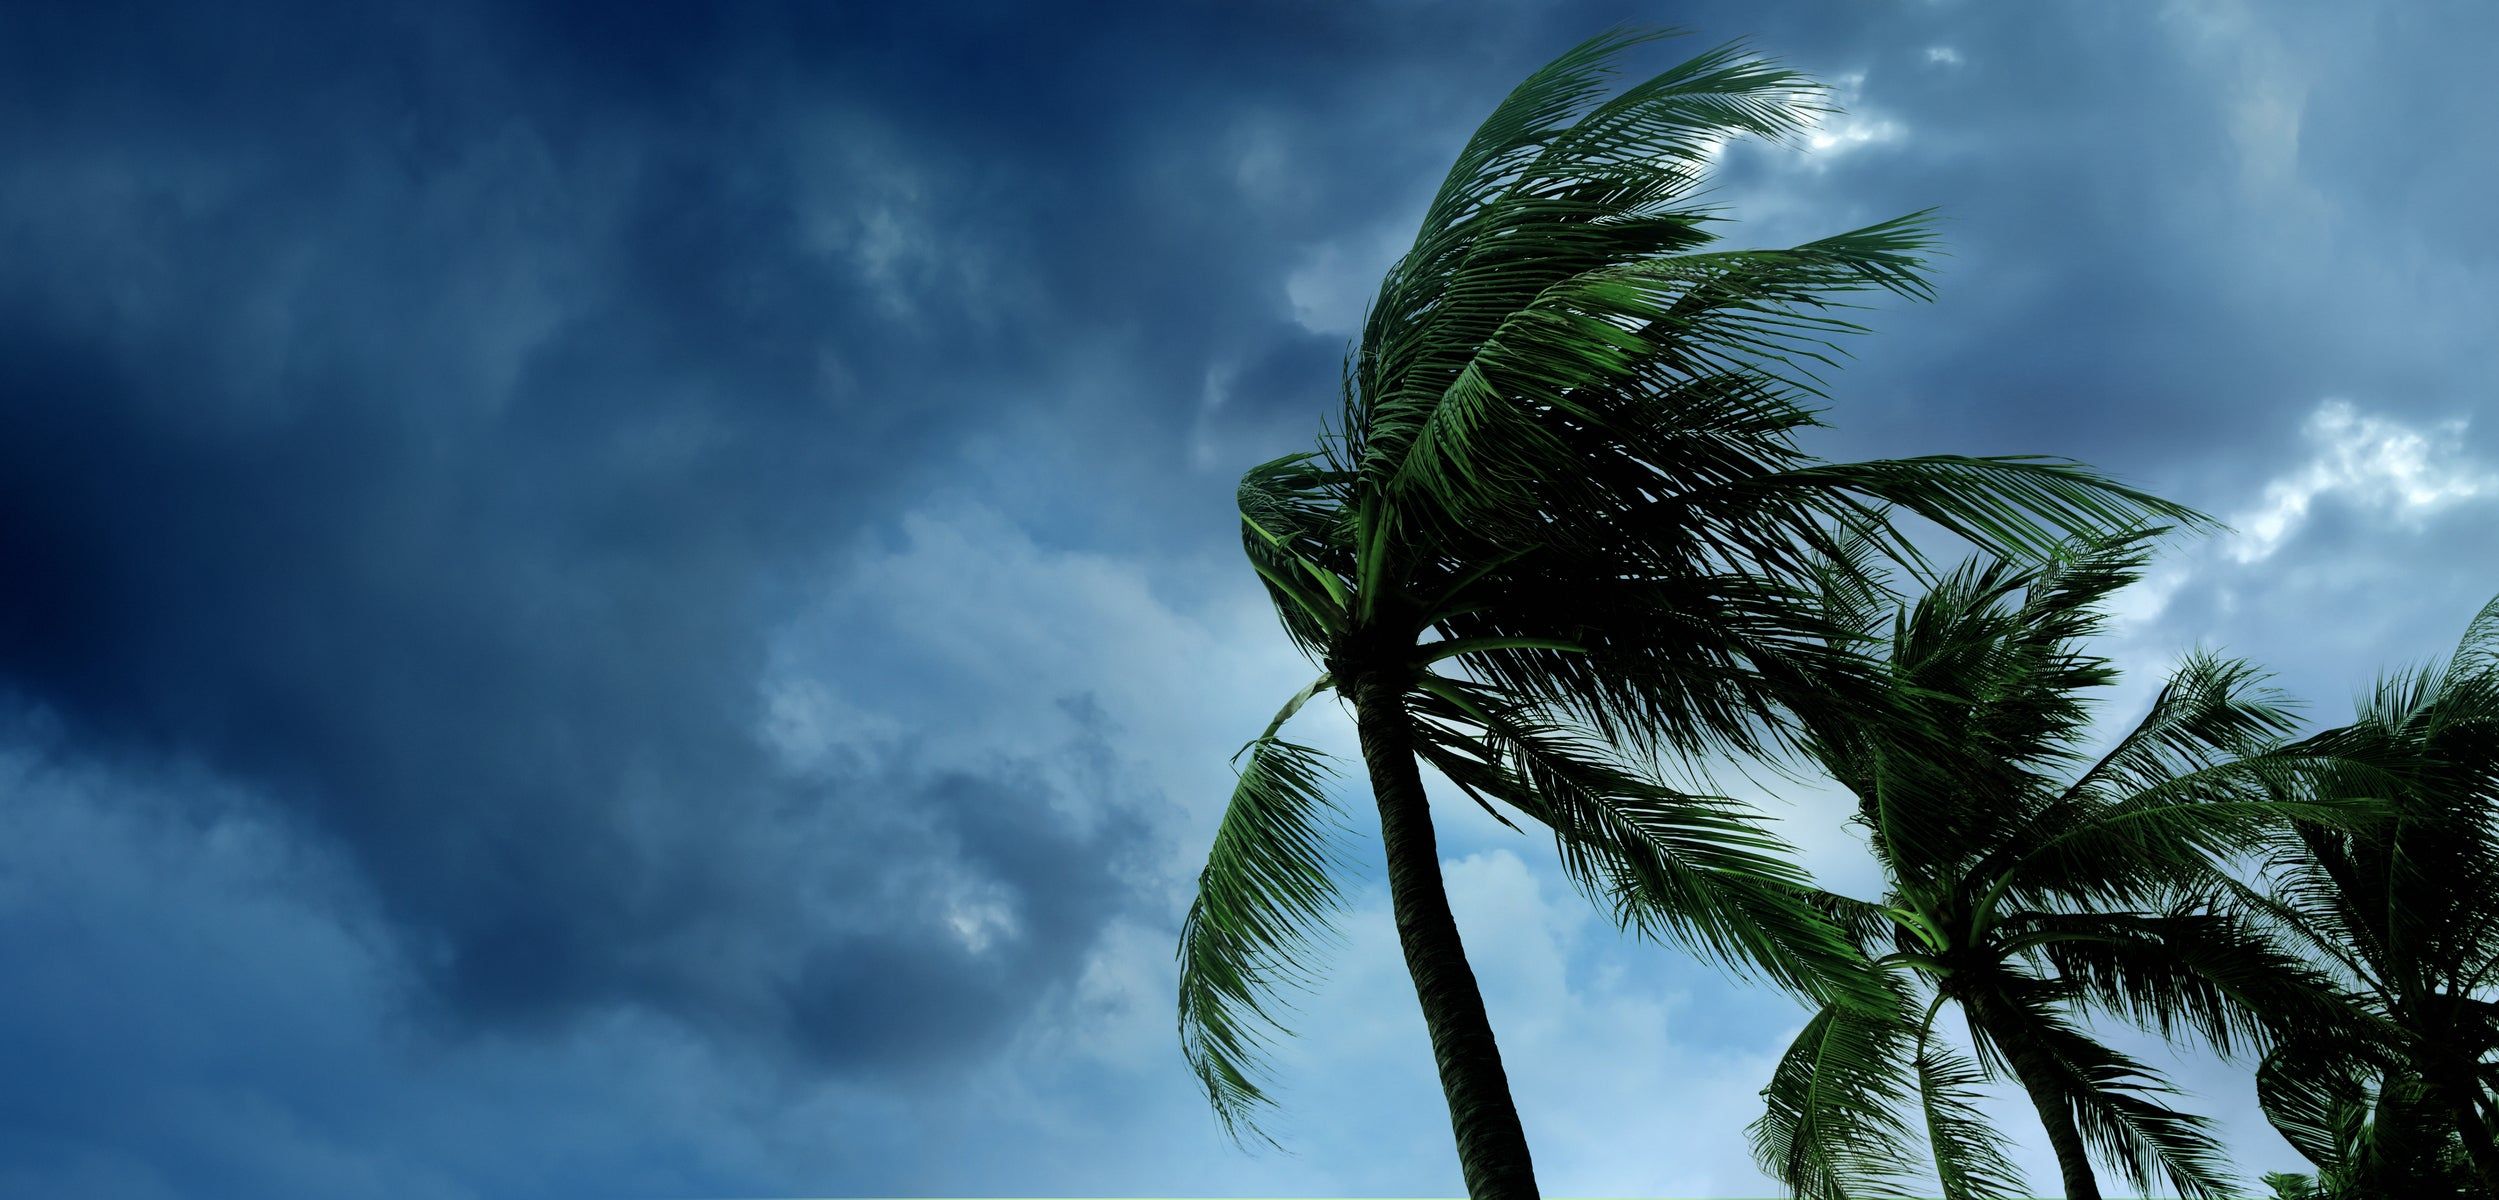 Tropical Storm Claudette may dampen Father's Day weekend flights - The Points Guy